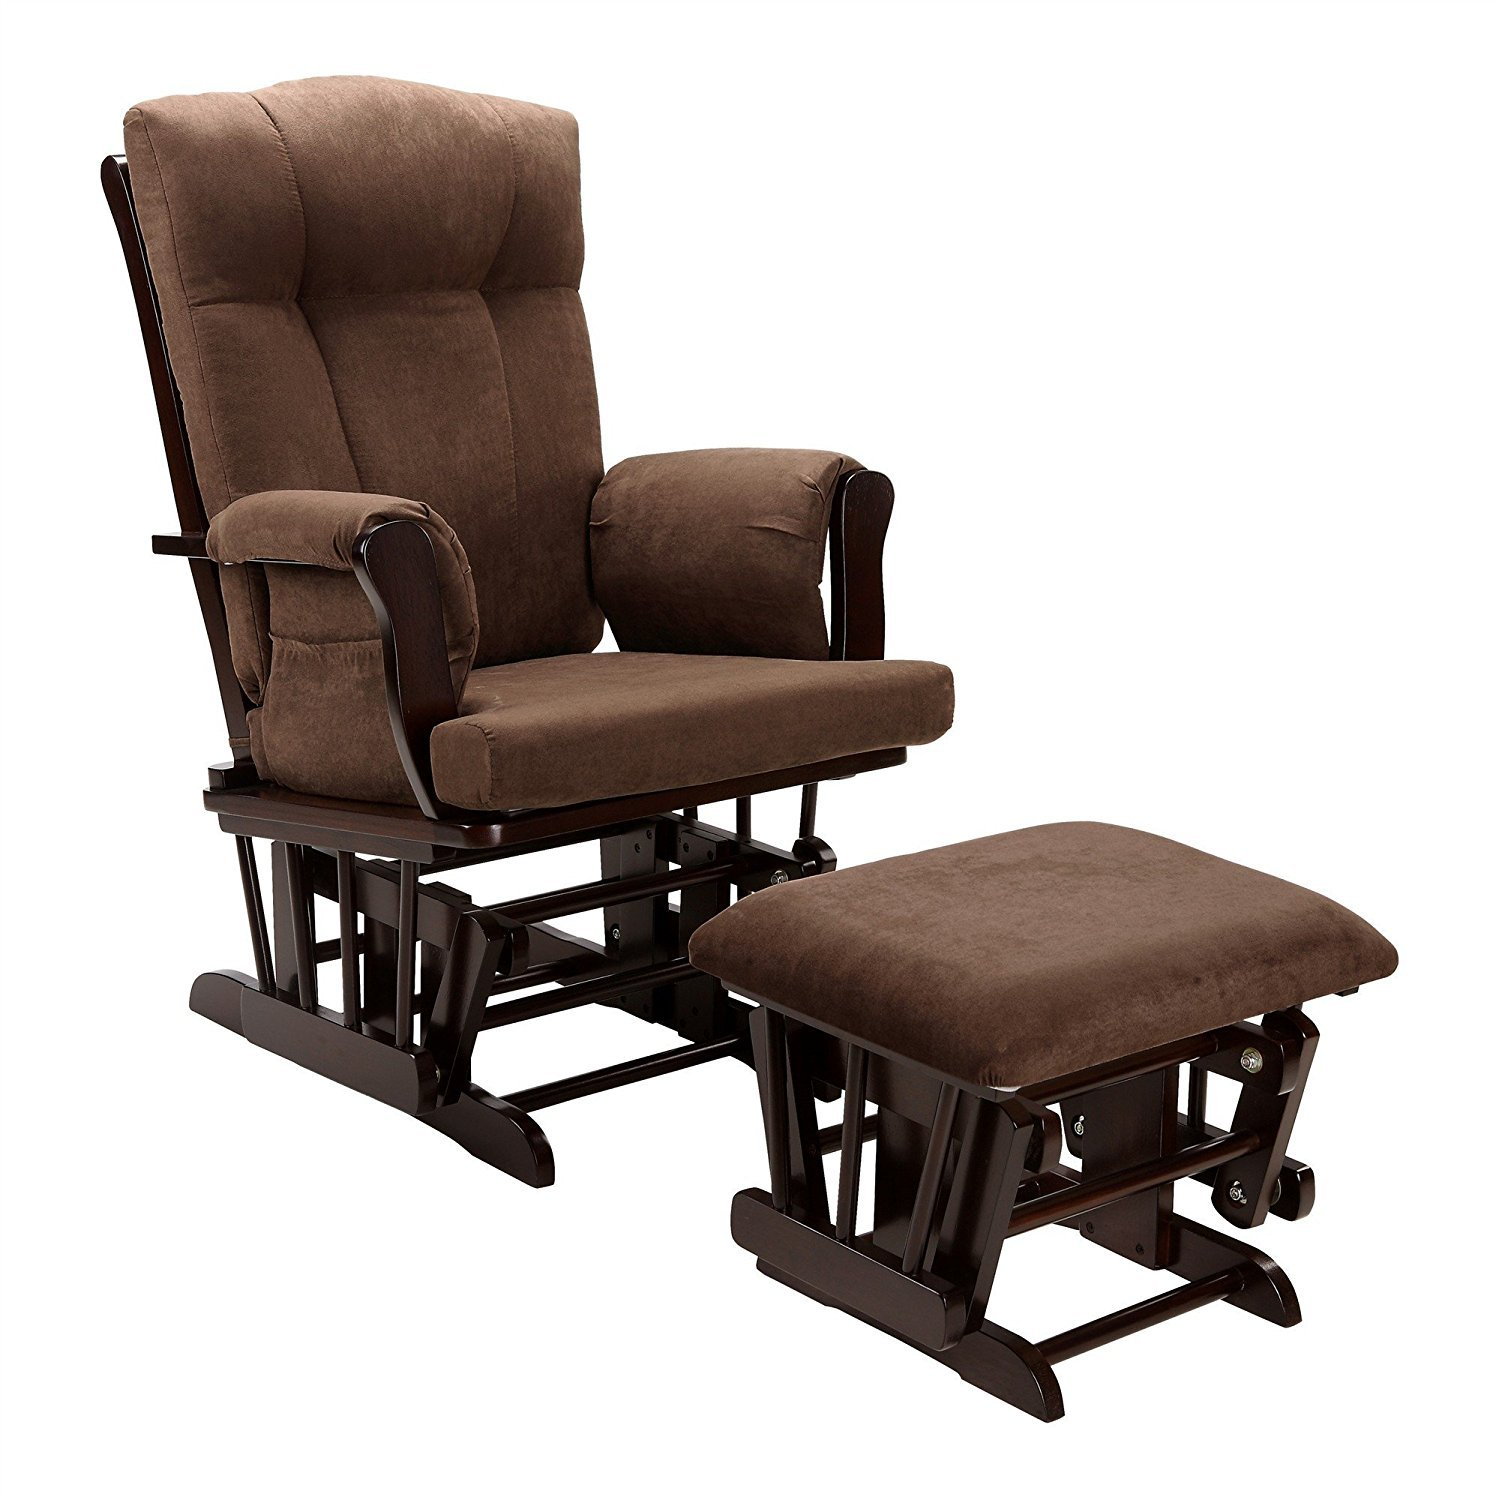 Baby Relax Glider and Ottoman, Espresso by Baby Relax